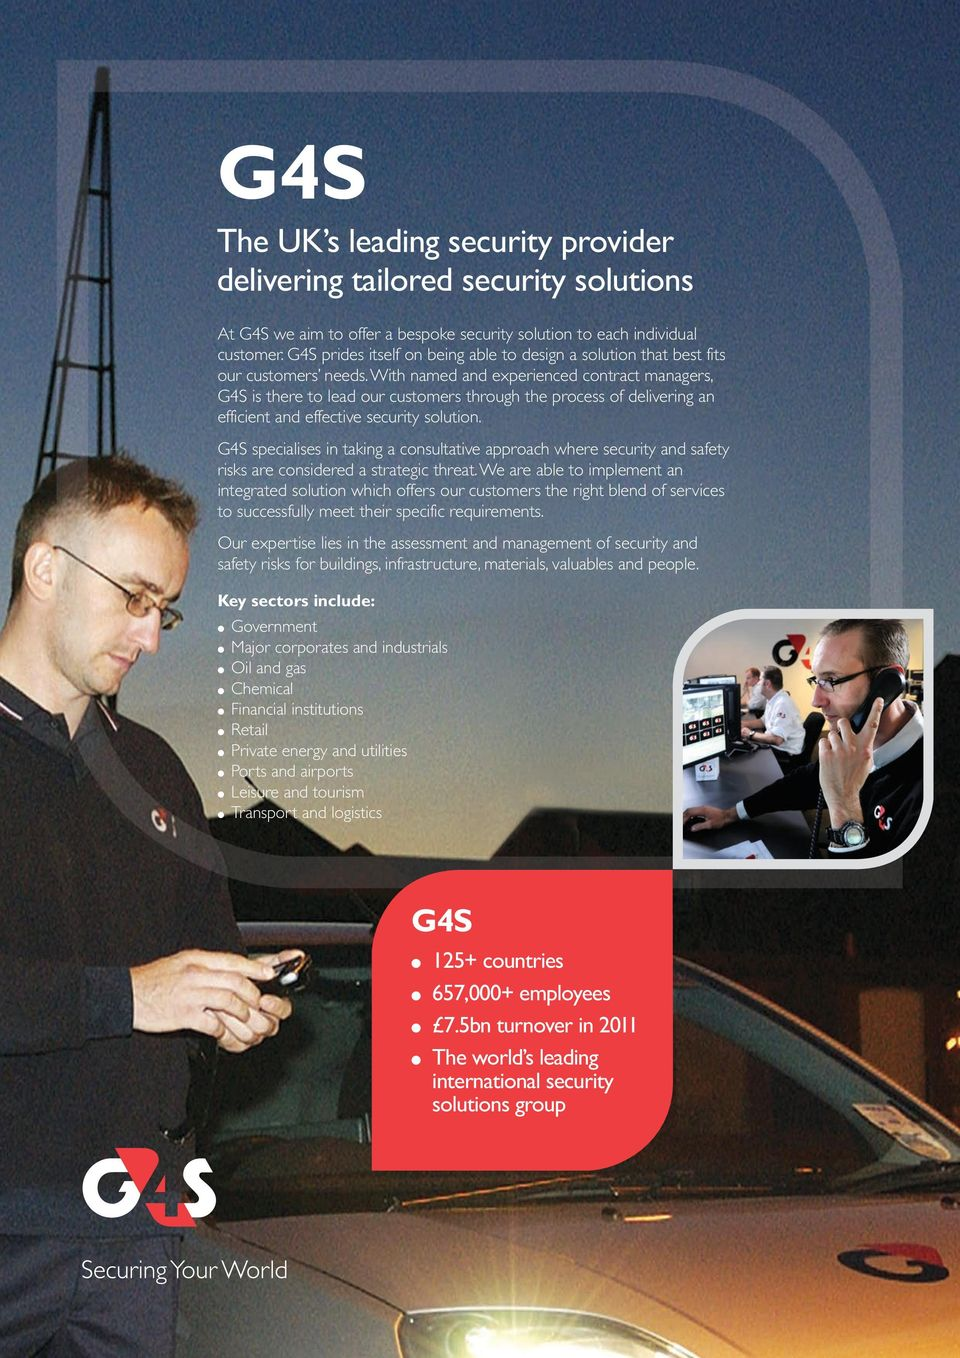 With named and experienced contract managers, G4S is there to lead our customers through the process of delivering an efficient and effective security solution.